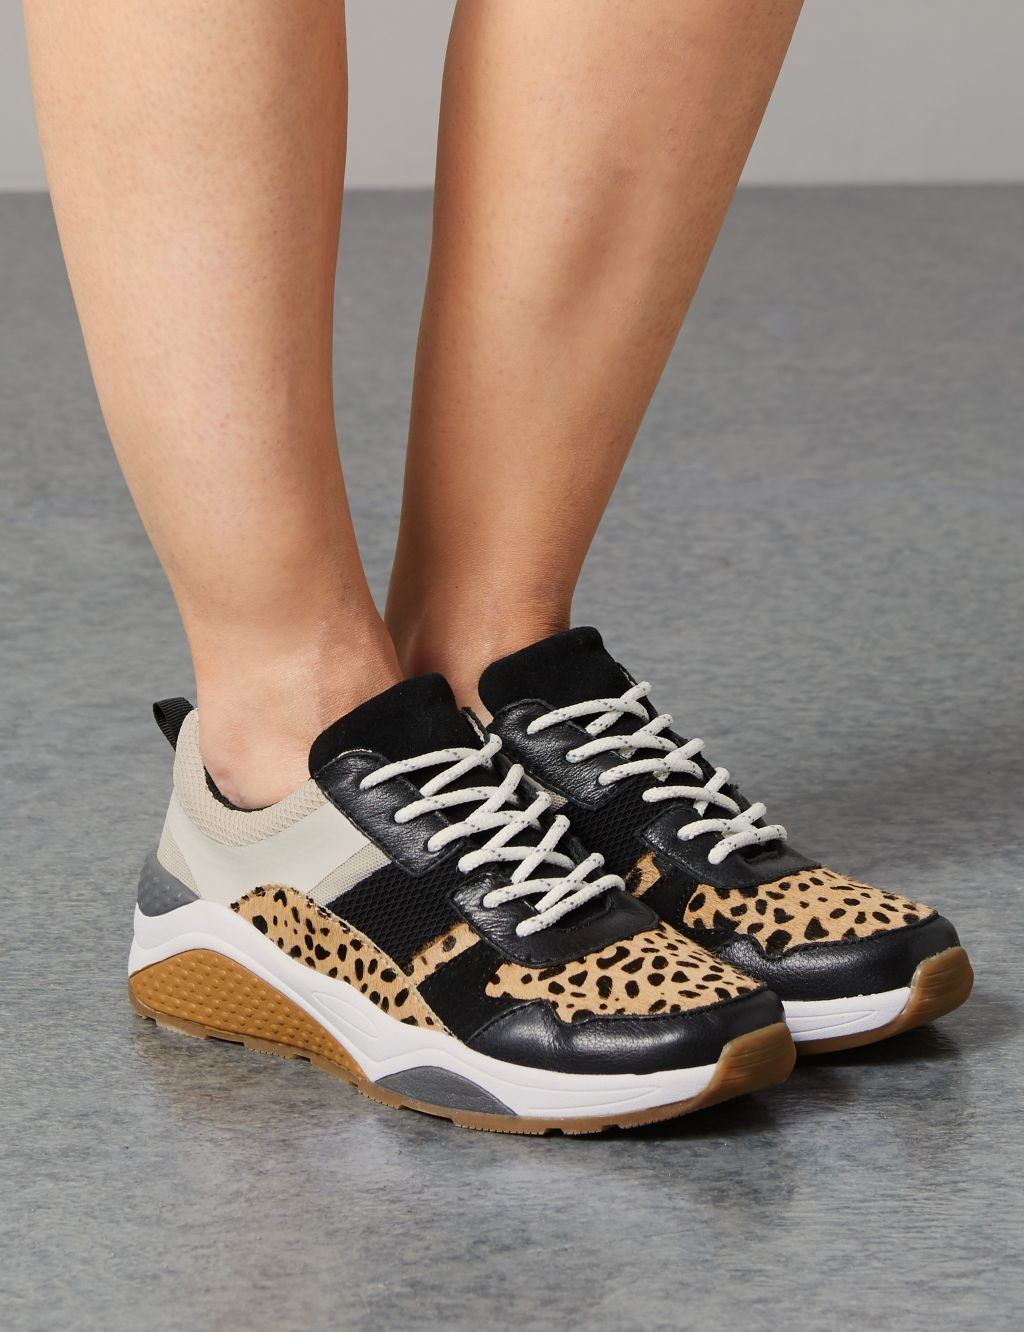 M\u0026S's Leopard Print Trainers Are Back